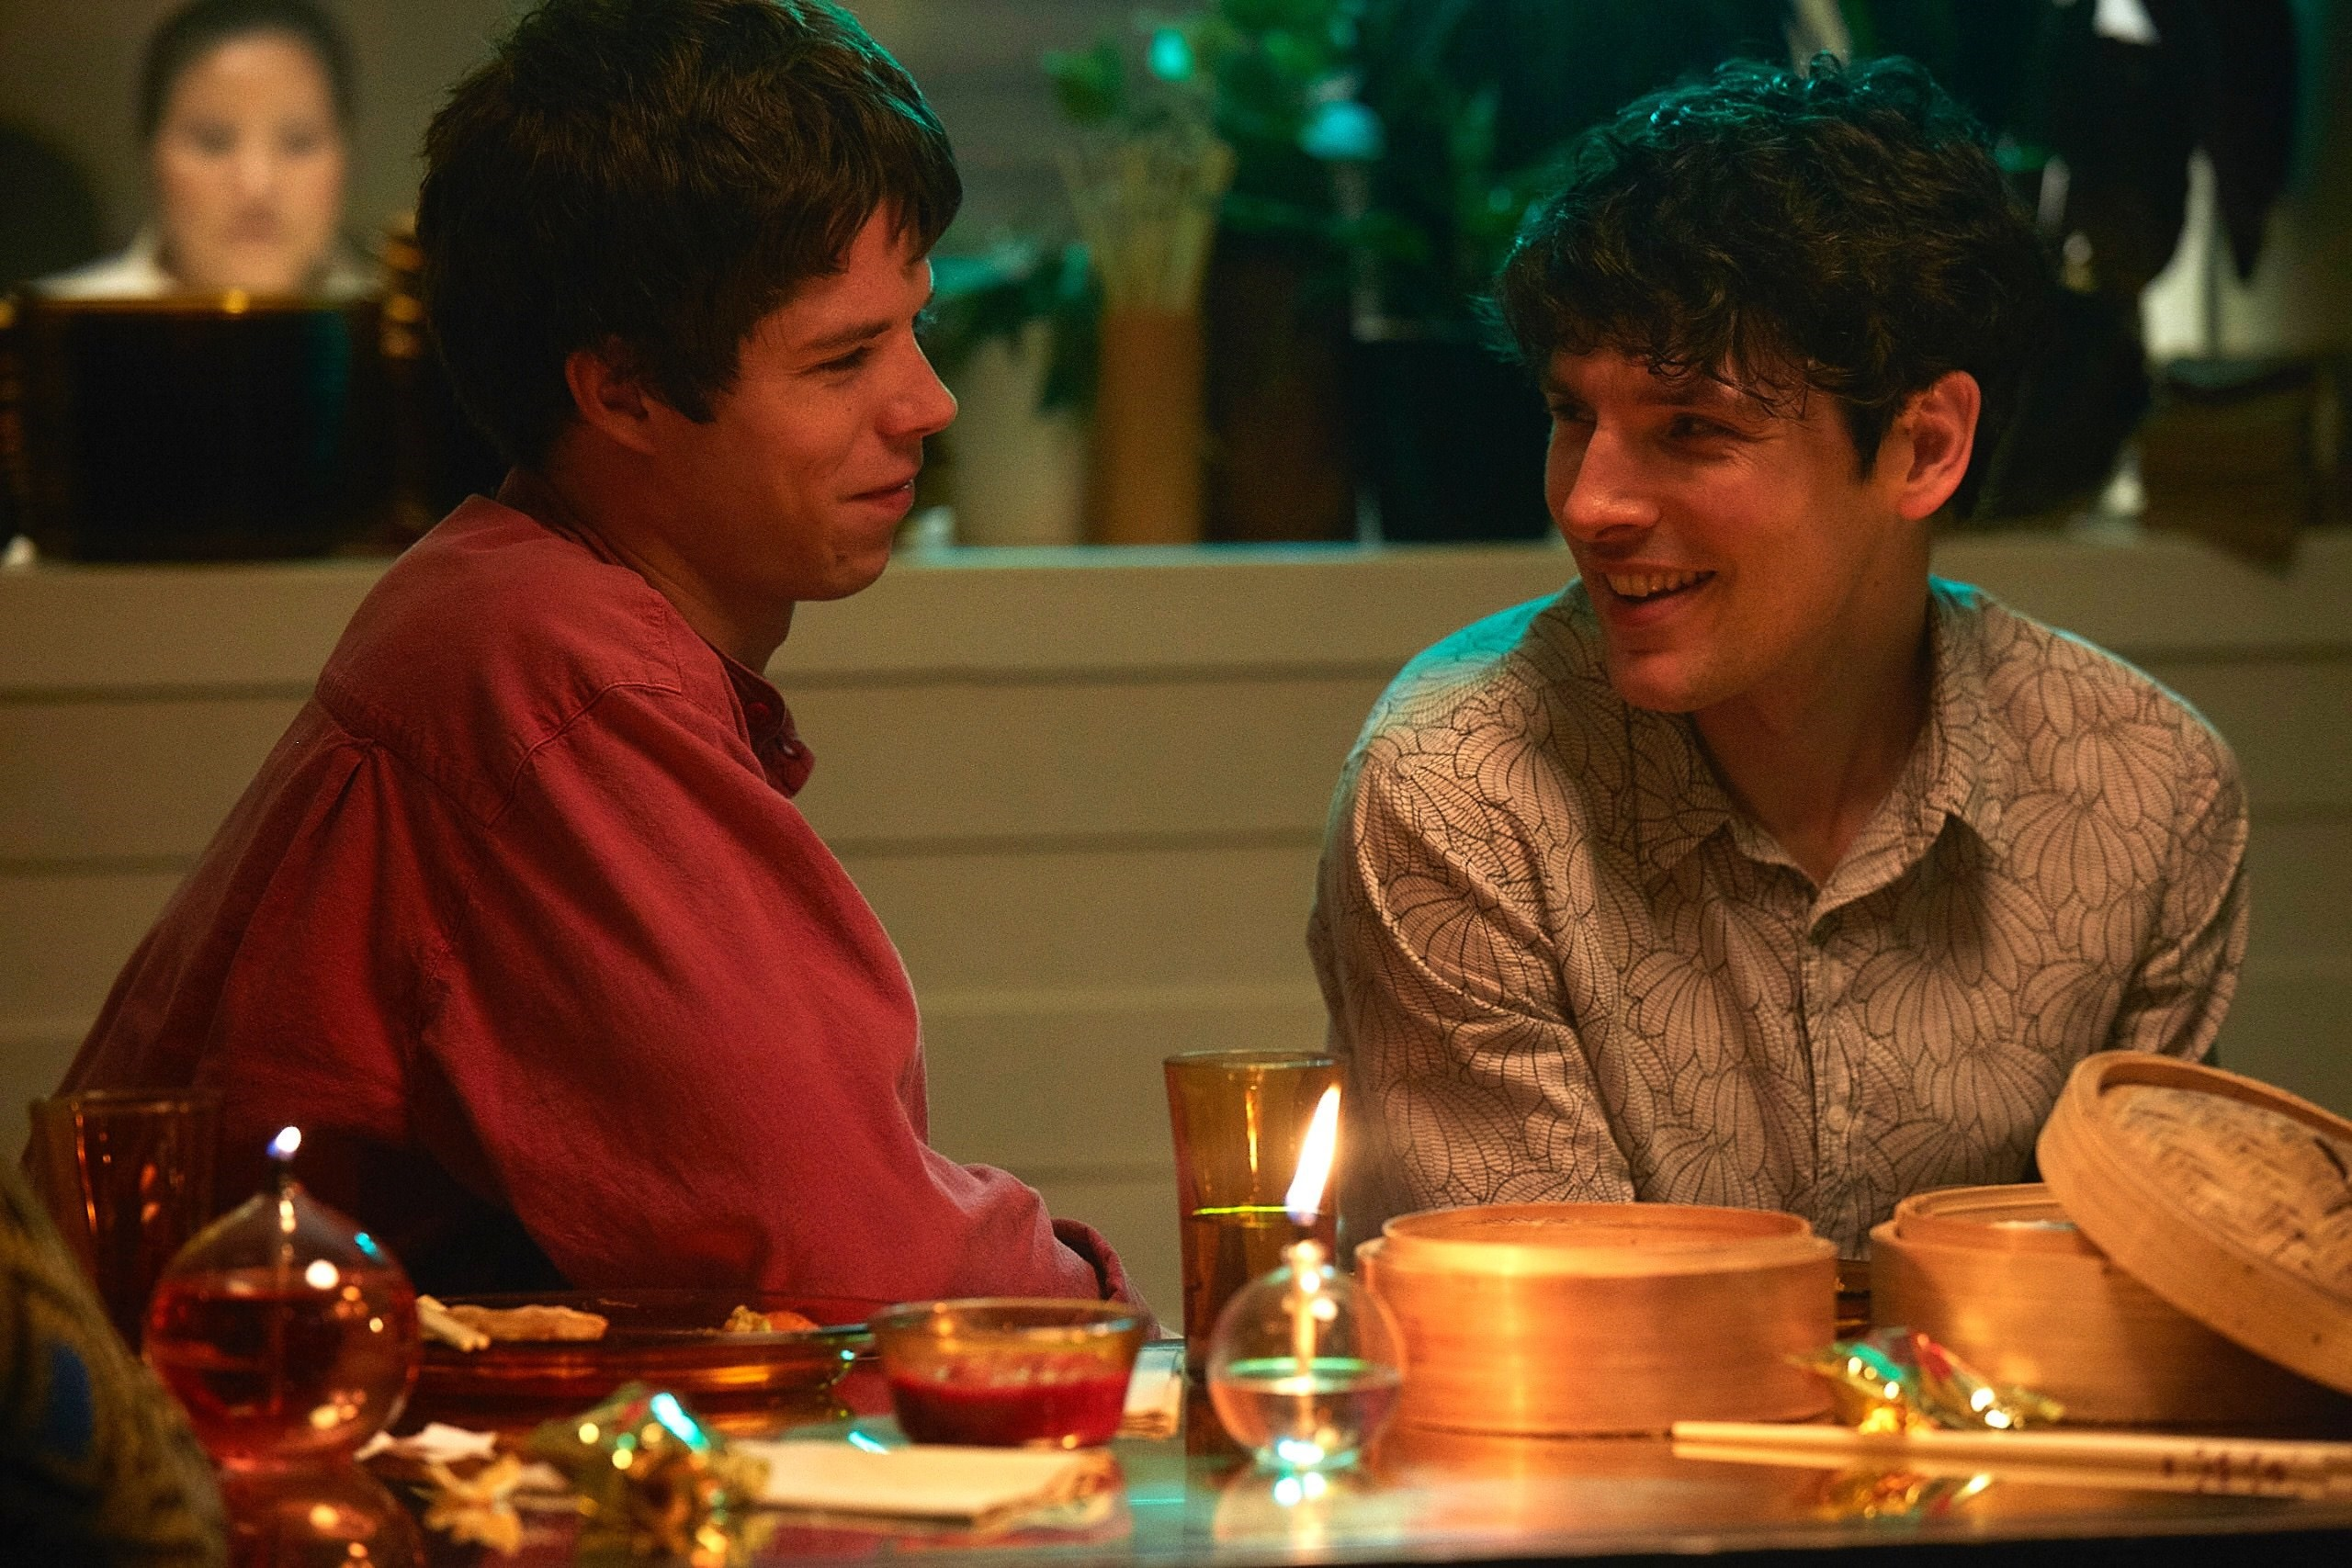 Simon Amstell and James Righton open up about the making of new tender comedy-drama Benjamin...